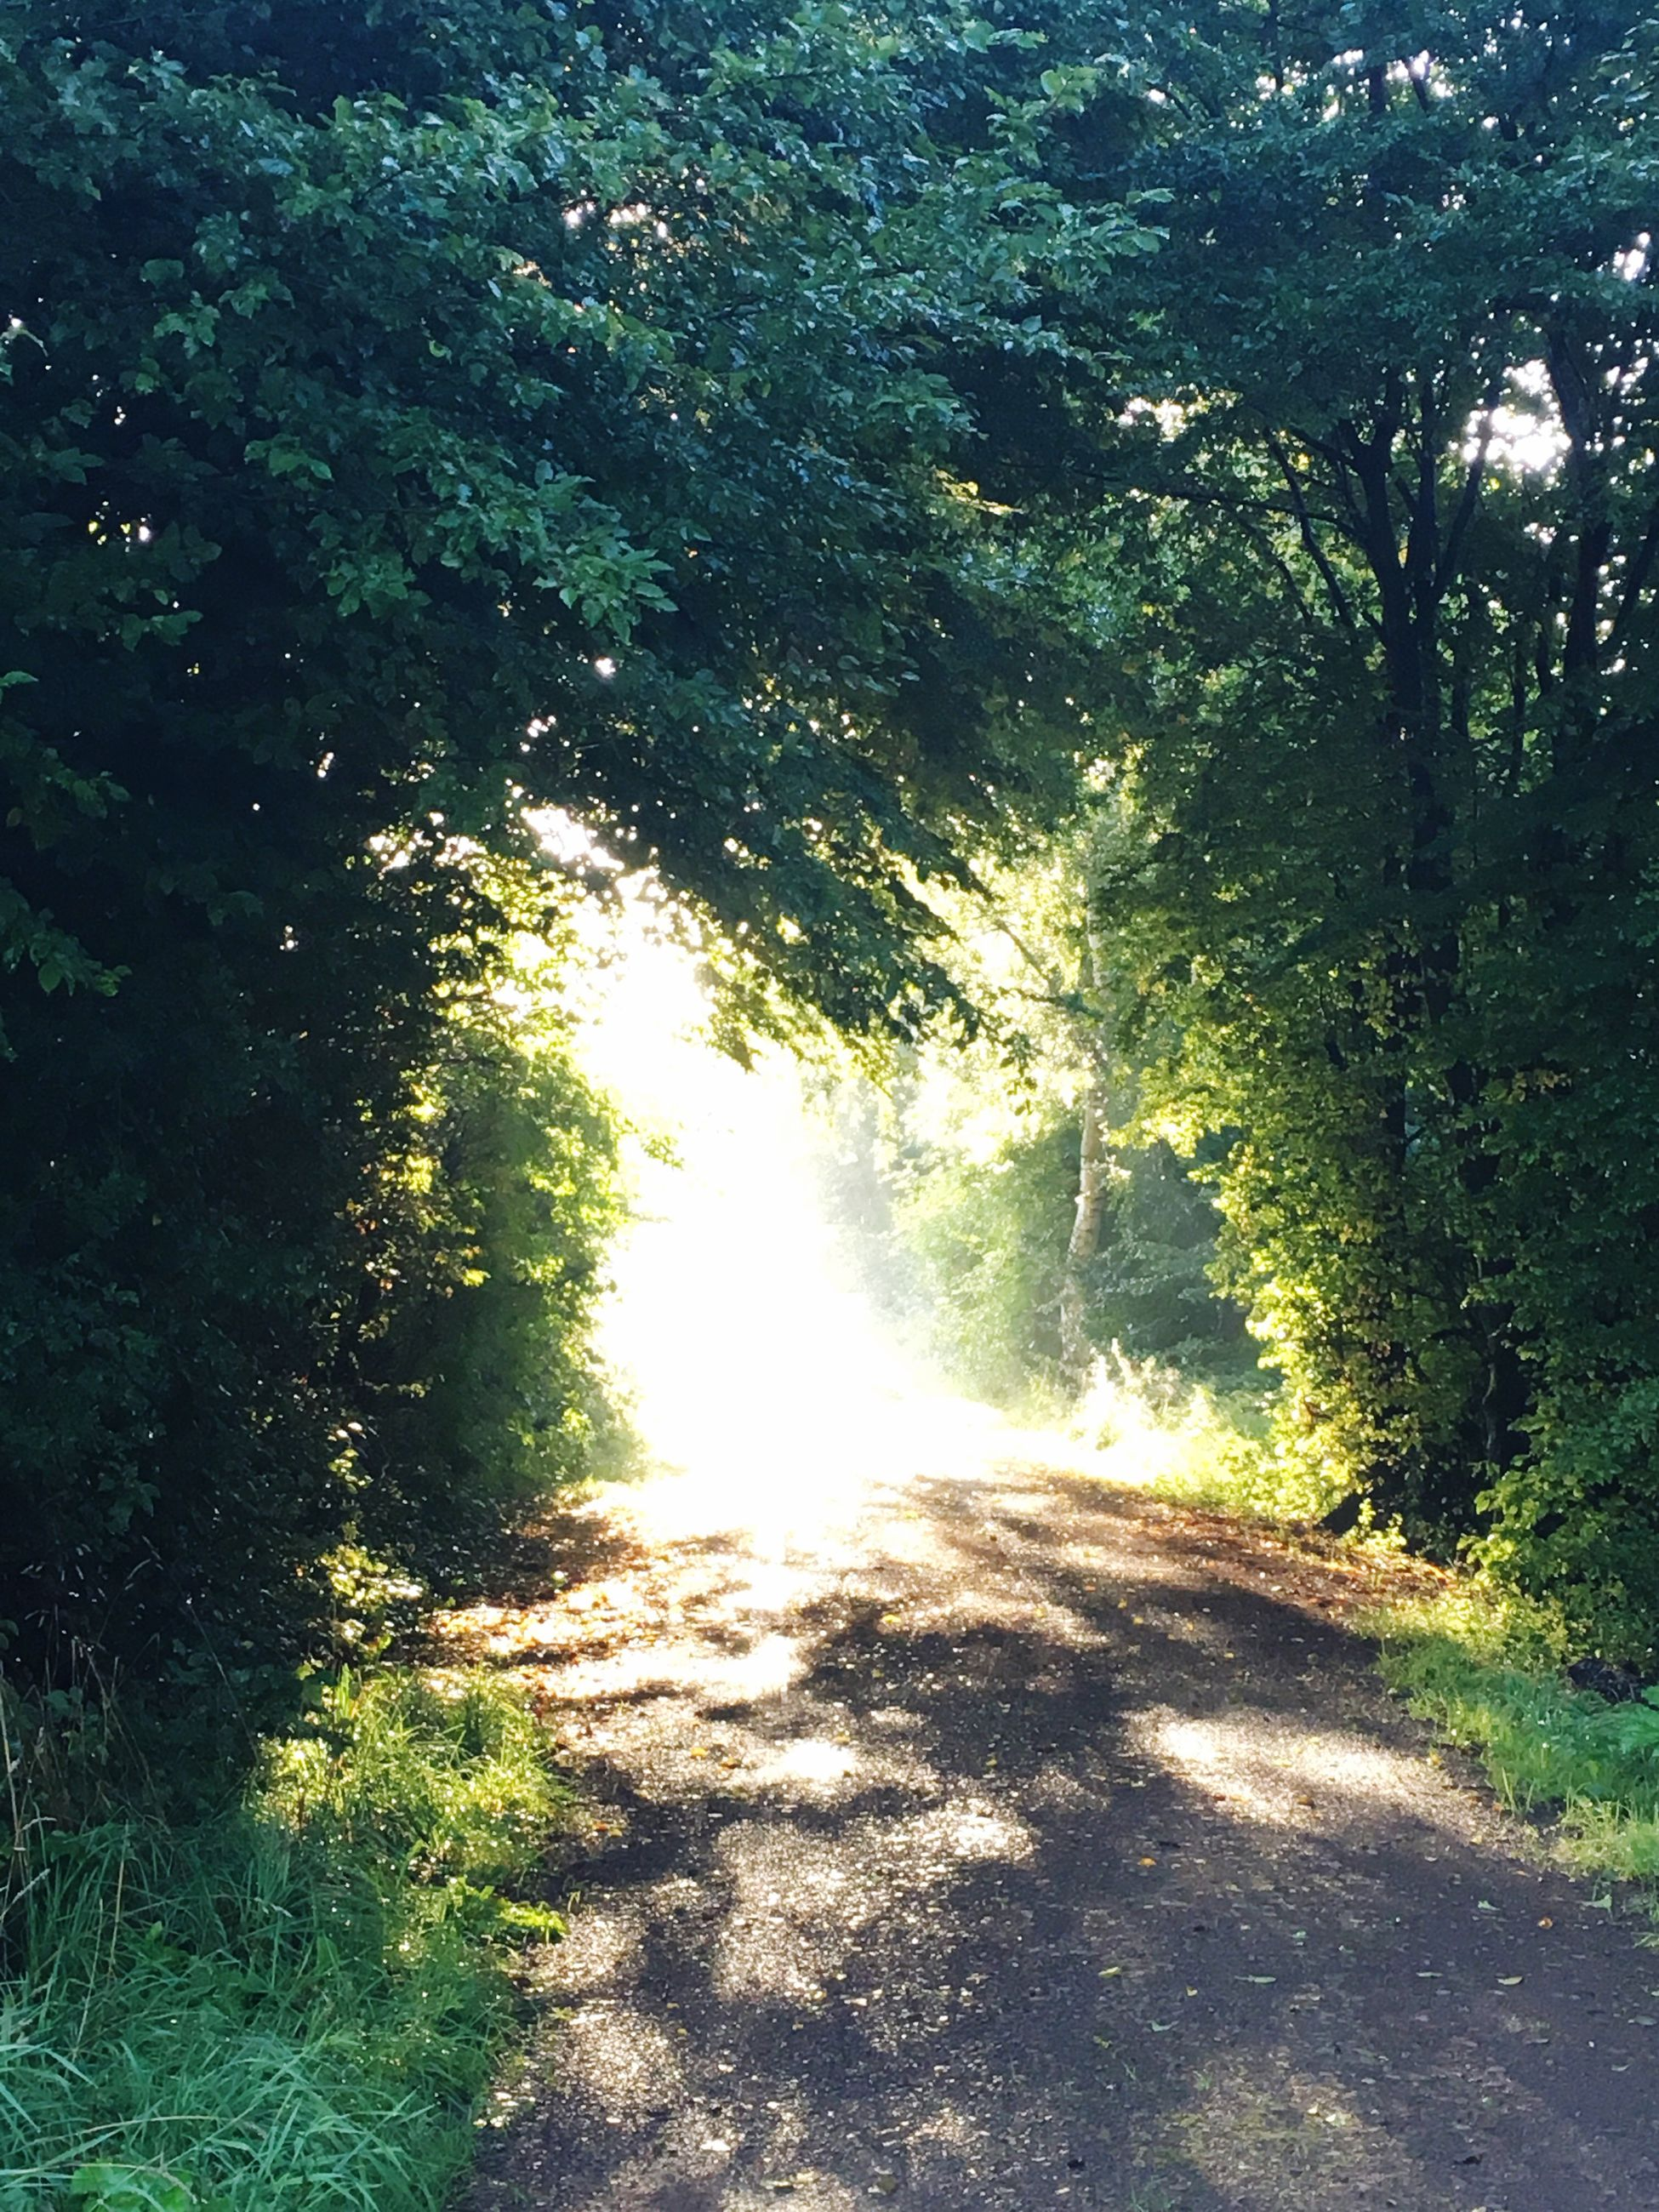 sunlight, tree, nature, sunbeam, day, no people, forest, beauty in nature, shadow, tranquility, growth, tranquil scene, outdoors, scenics, green color